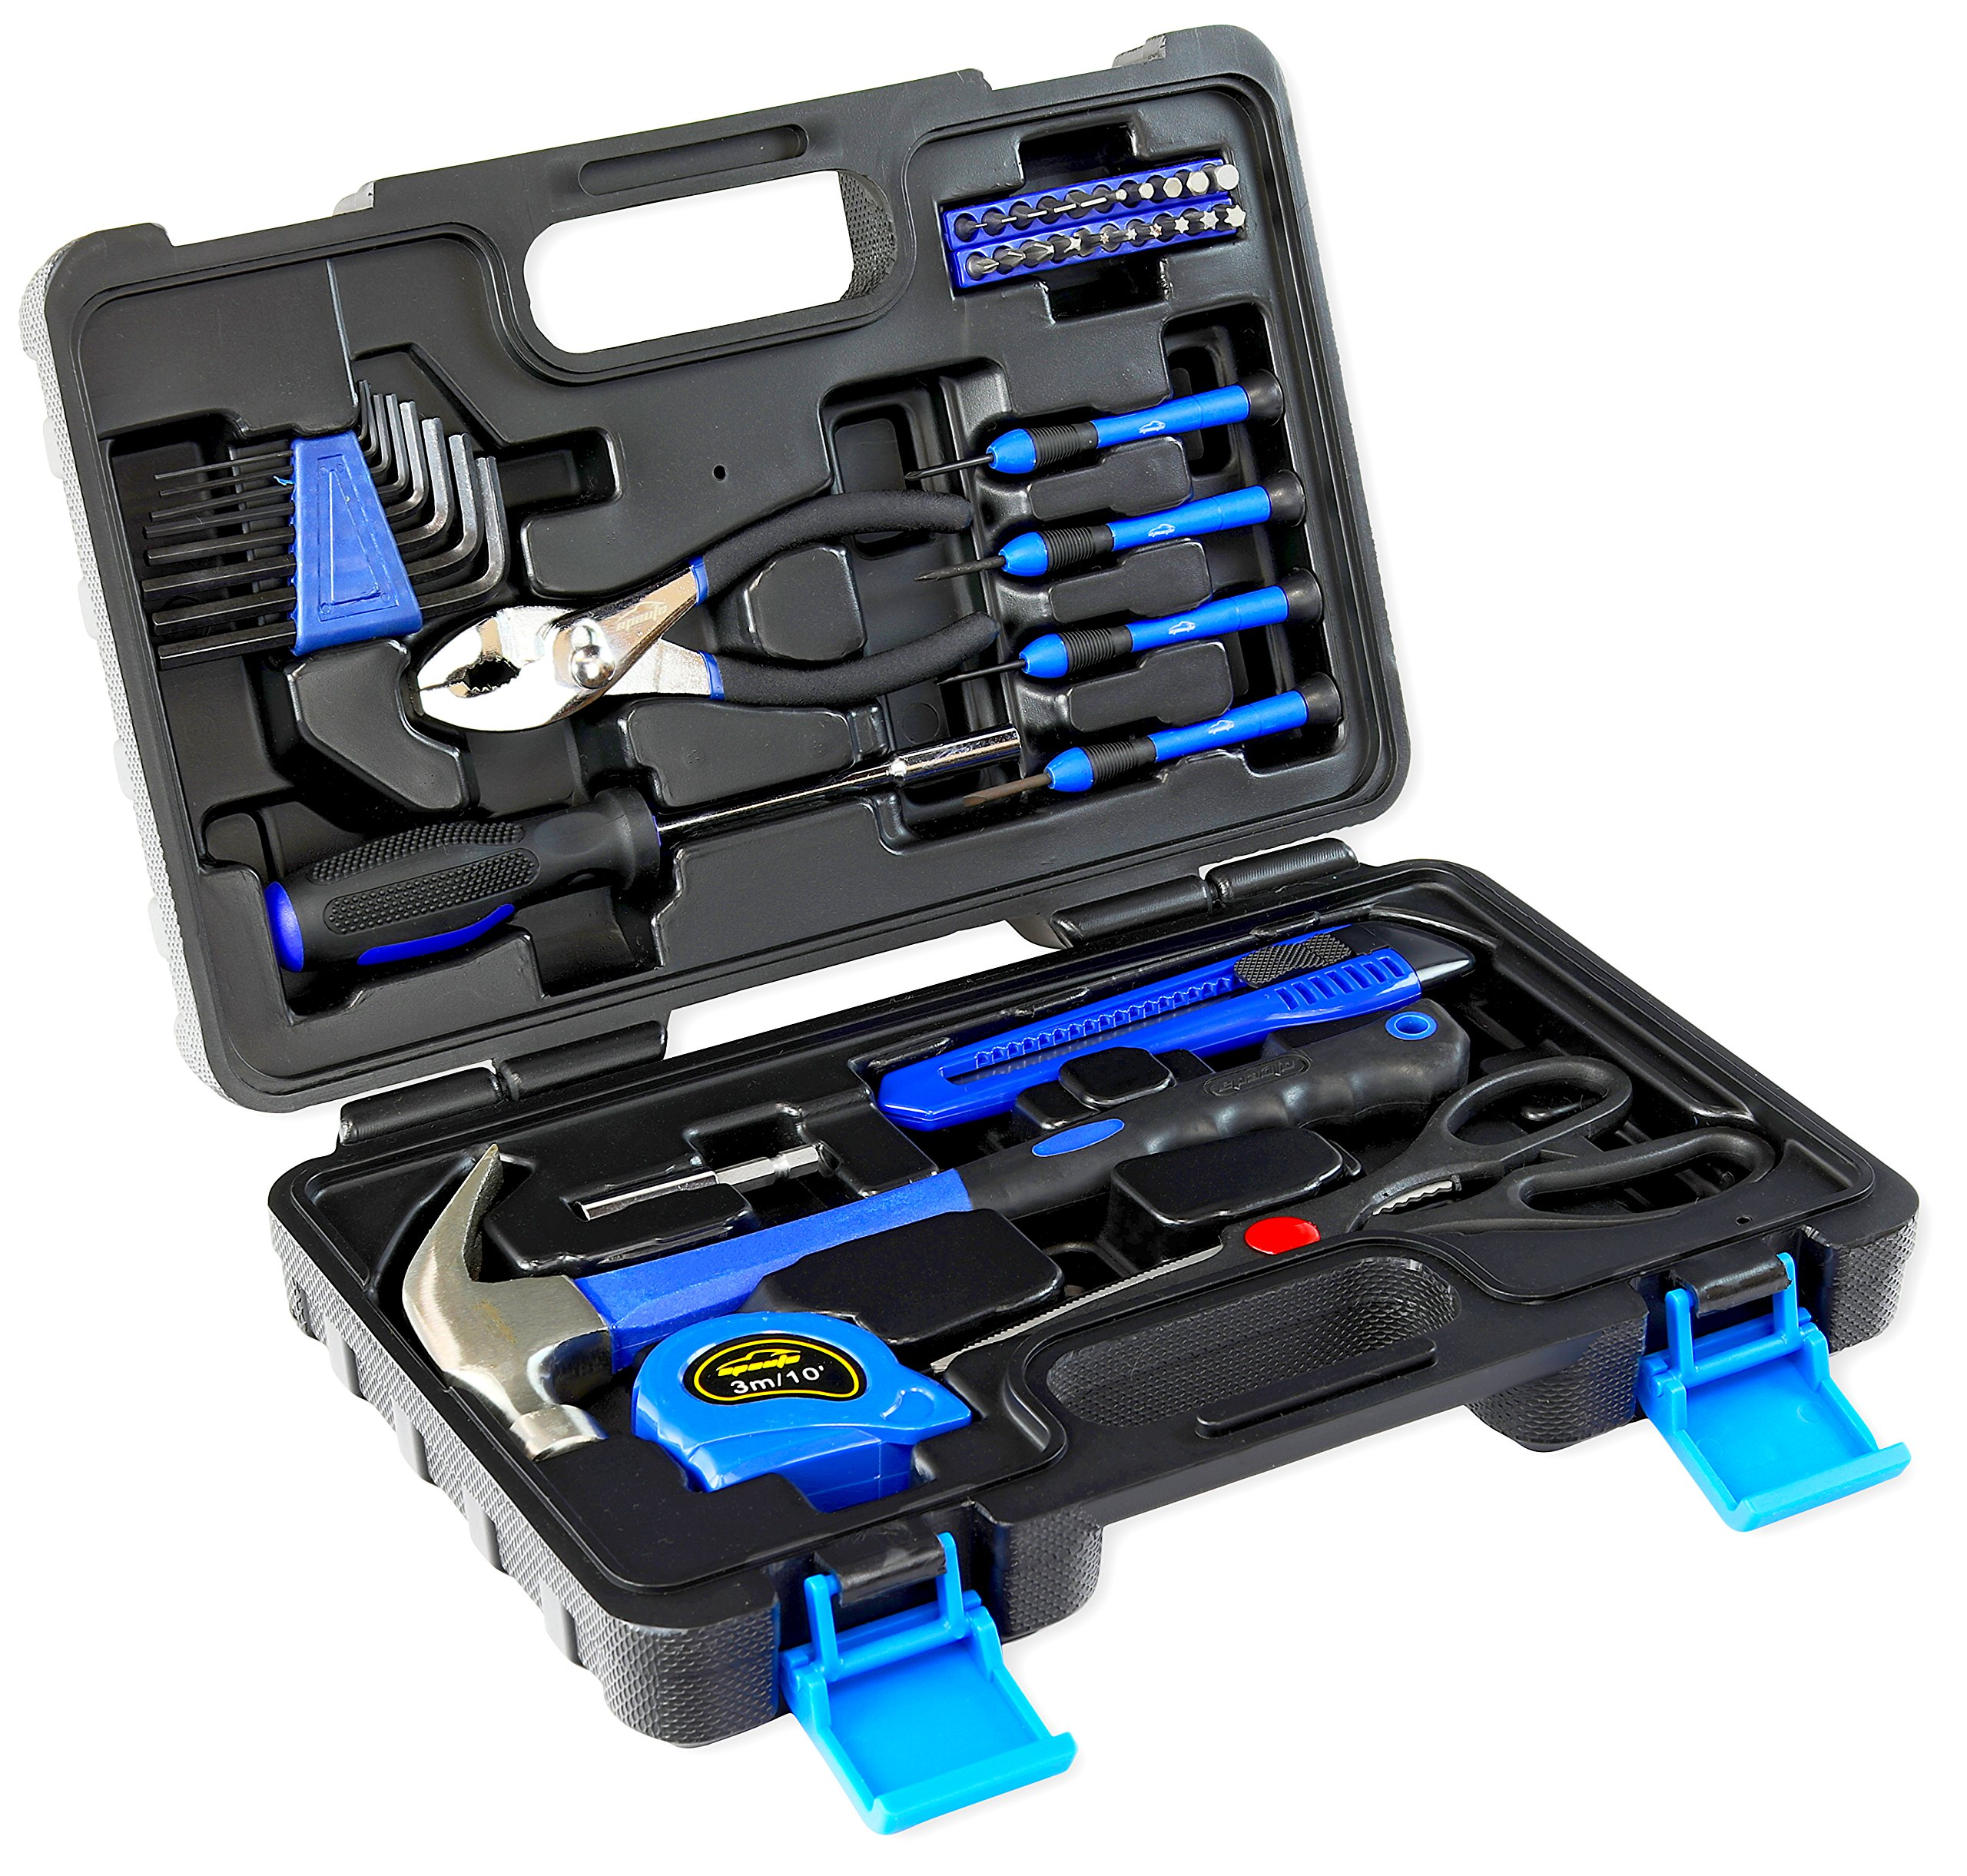 39-Piece Tool Set - General Household Hand Tool Kit with Toolbox Storage Case